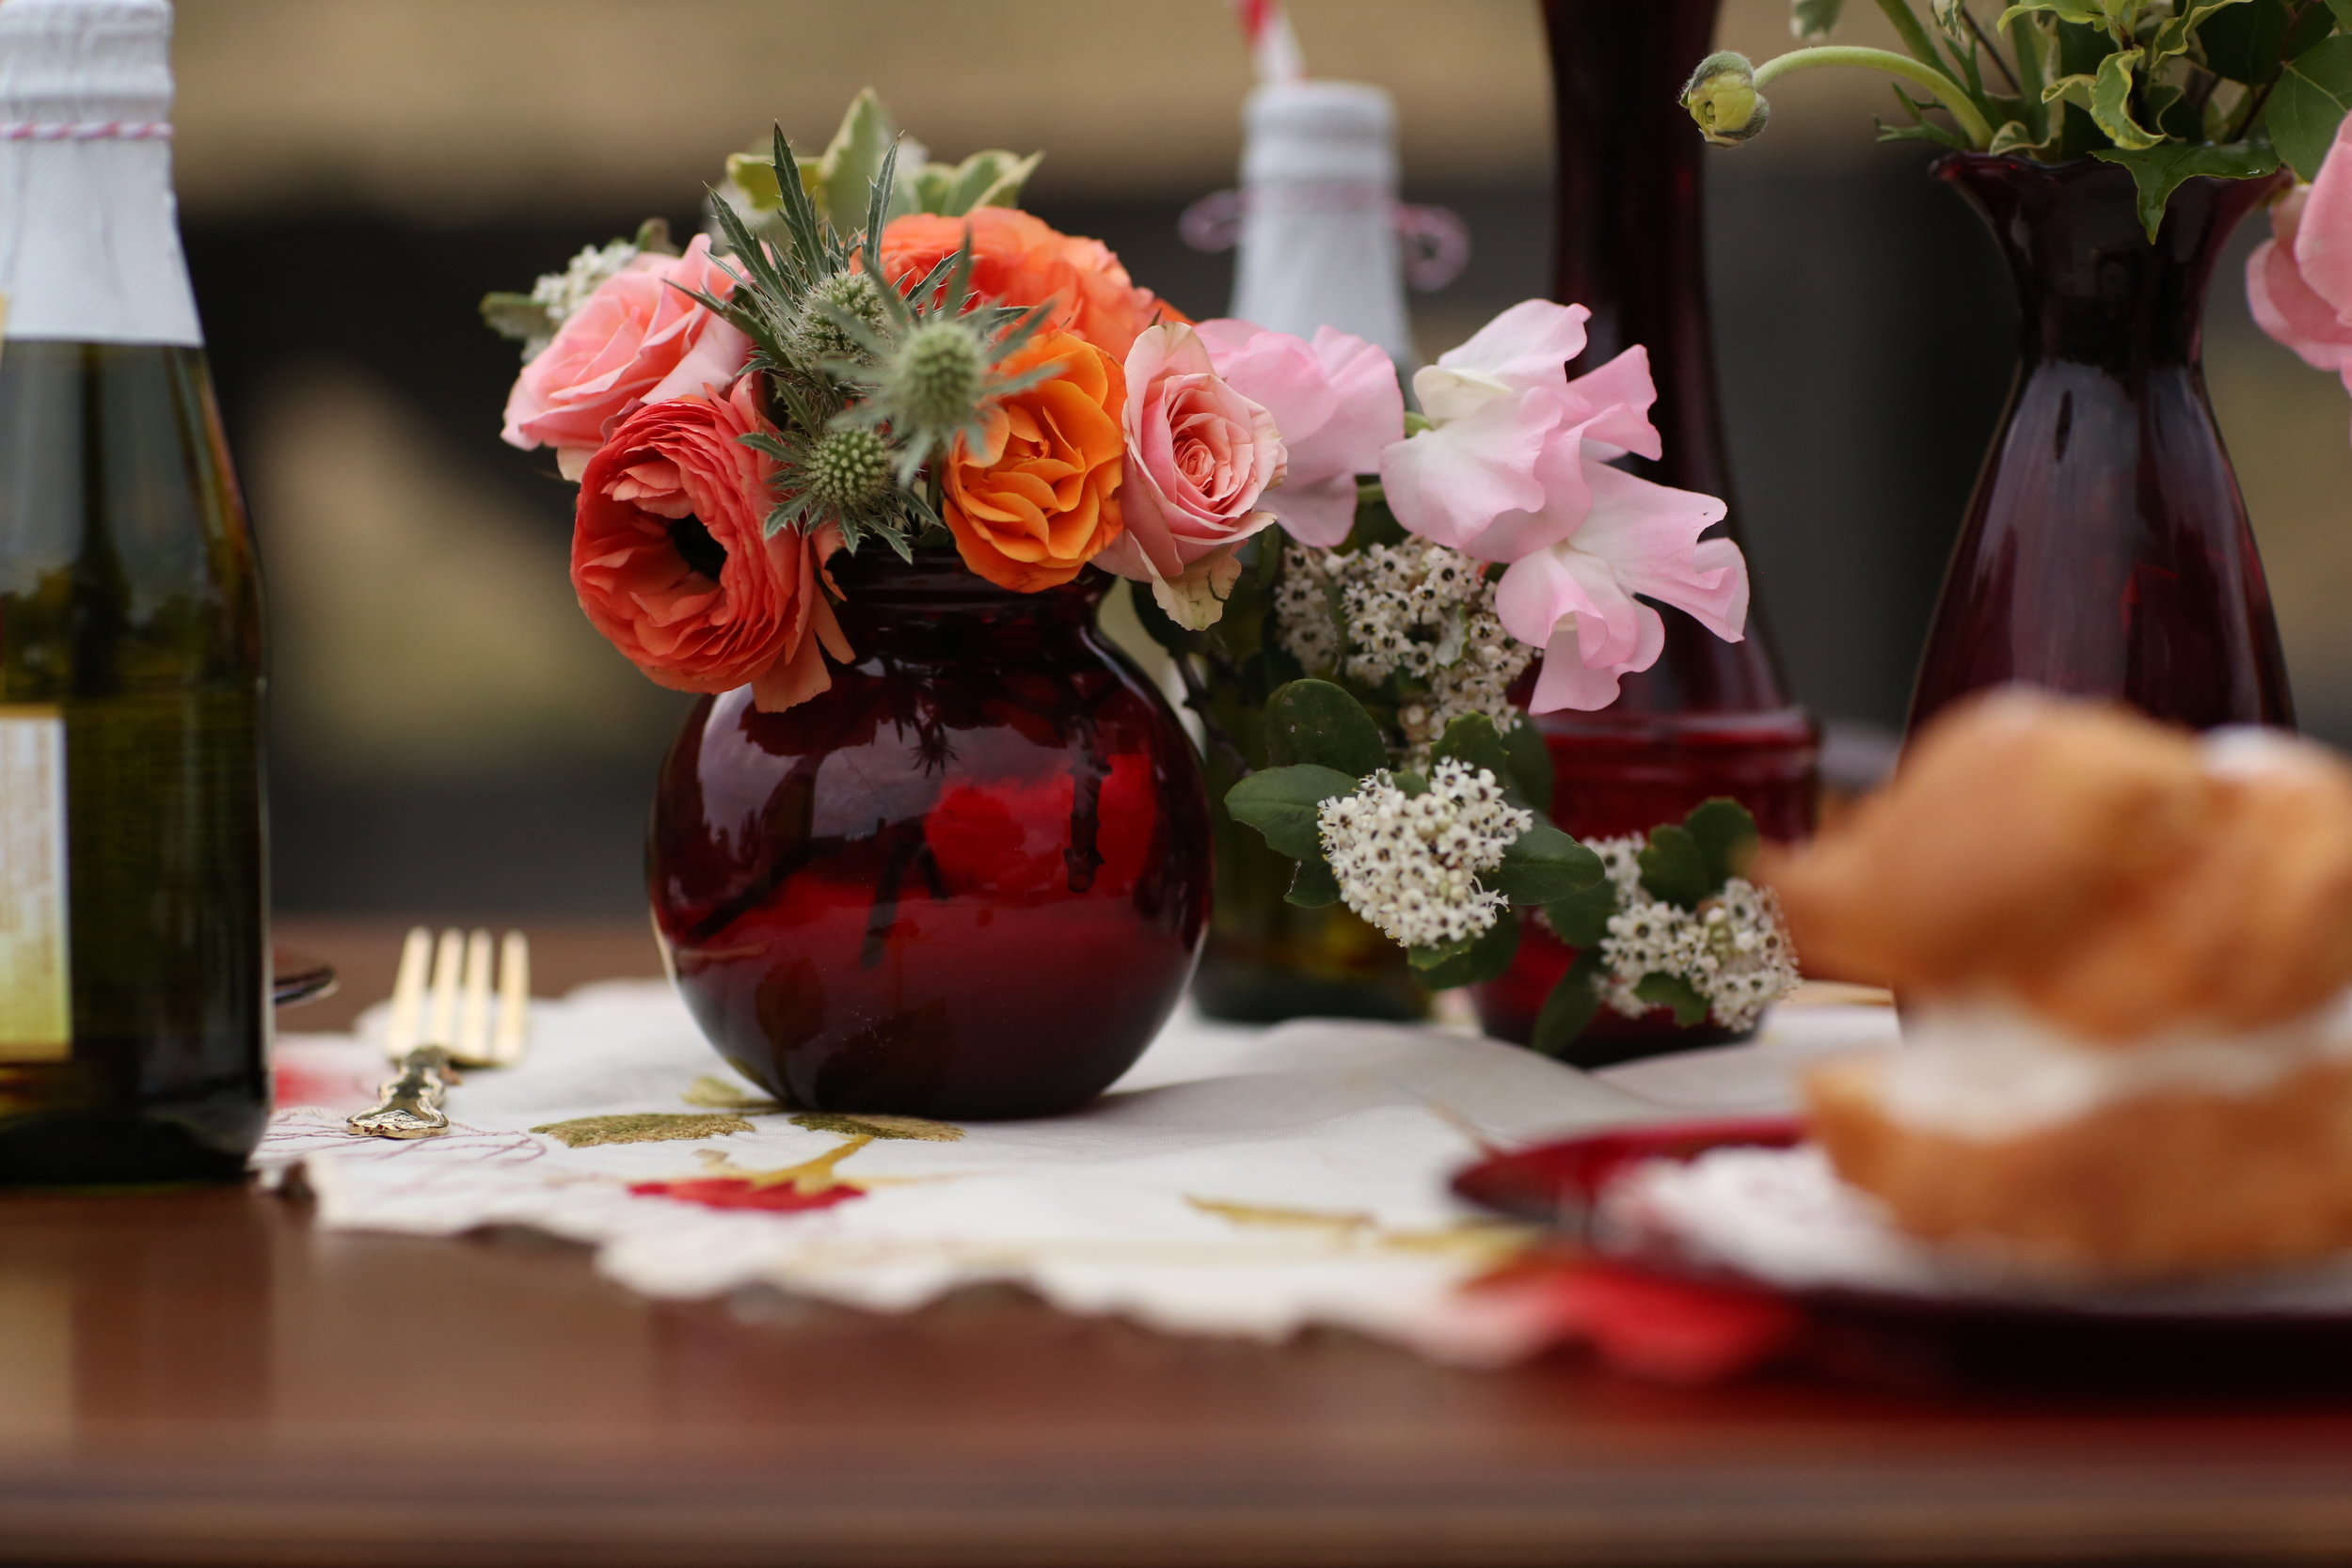 Styled shoot featuring orange, red, pink and green for the colors. Anchor Hocking Ruby Red vases went perfect on the vintage table. All available to rent in the Temecula Valley.